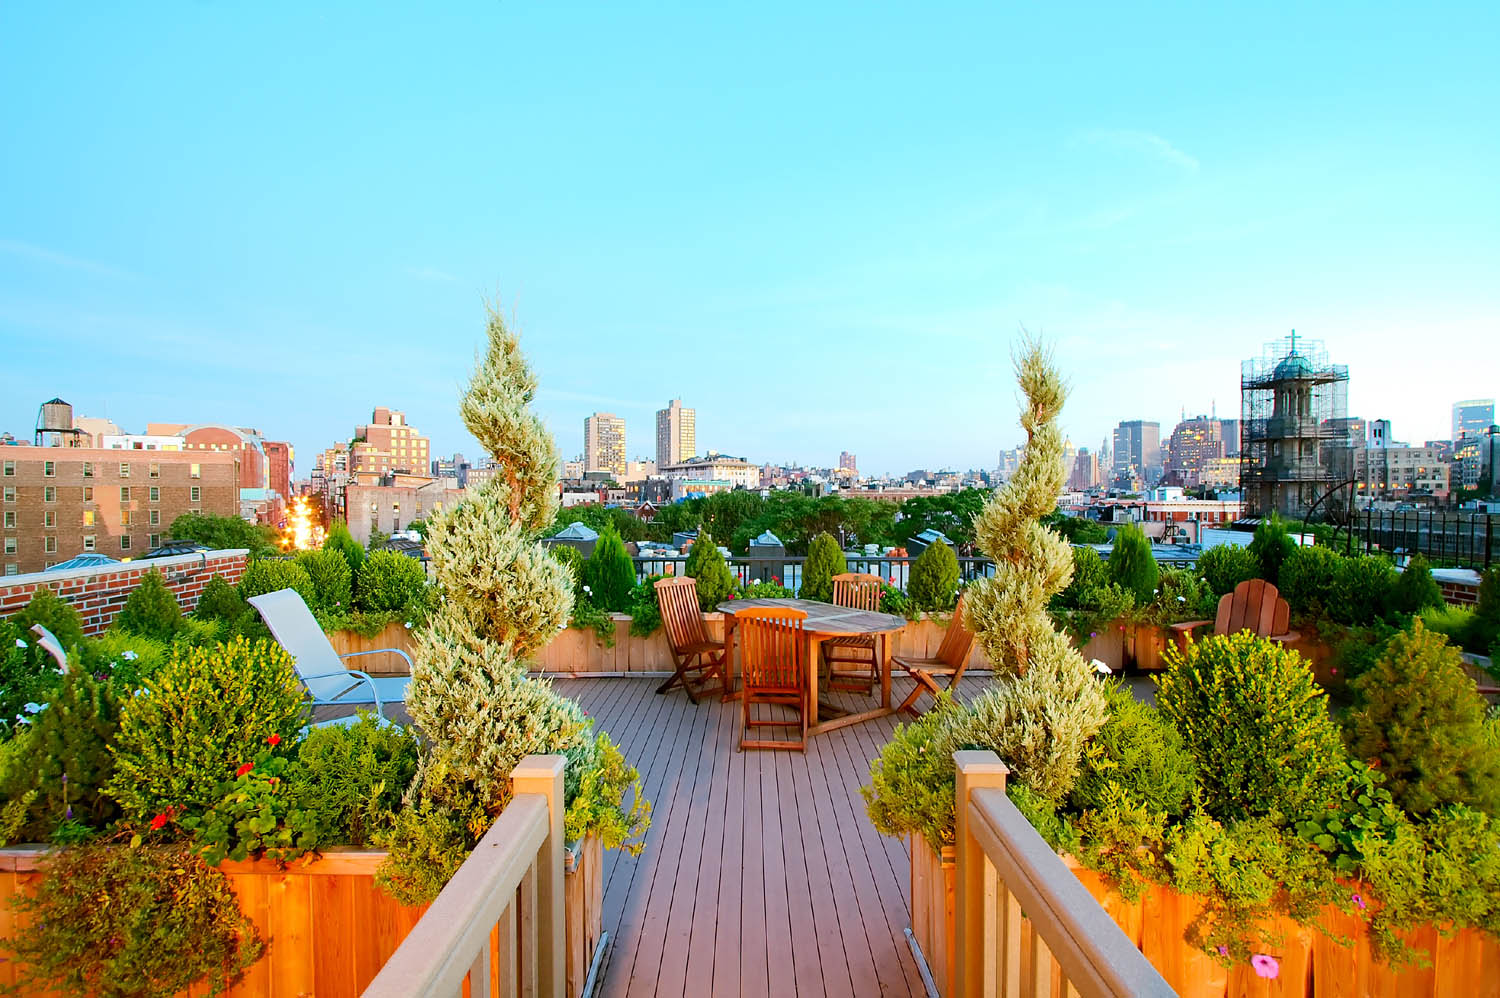 Make The Most Of Your Rooftop Garden With These Design Tips - Rooftop landscaping